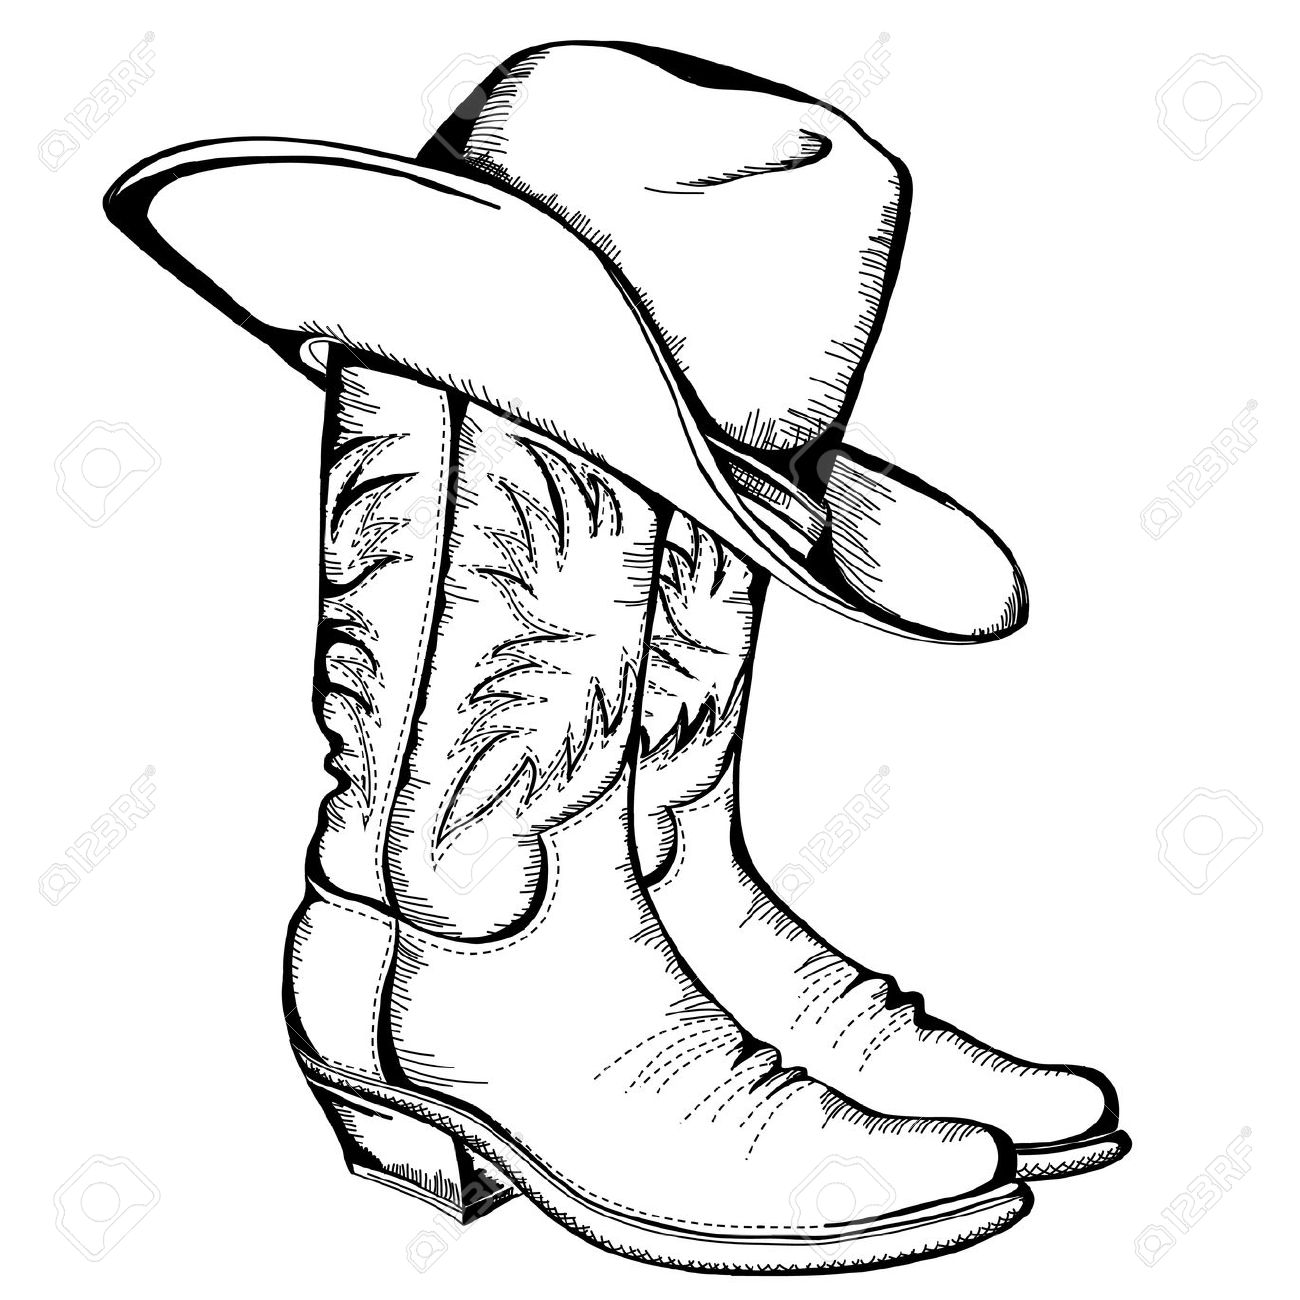 Cowboy Boots: Cowboy Boots And .-cowboy boots: Cowboy boots and .-11